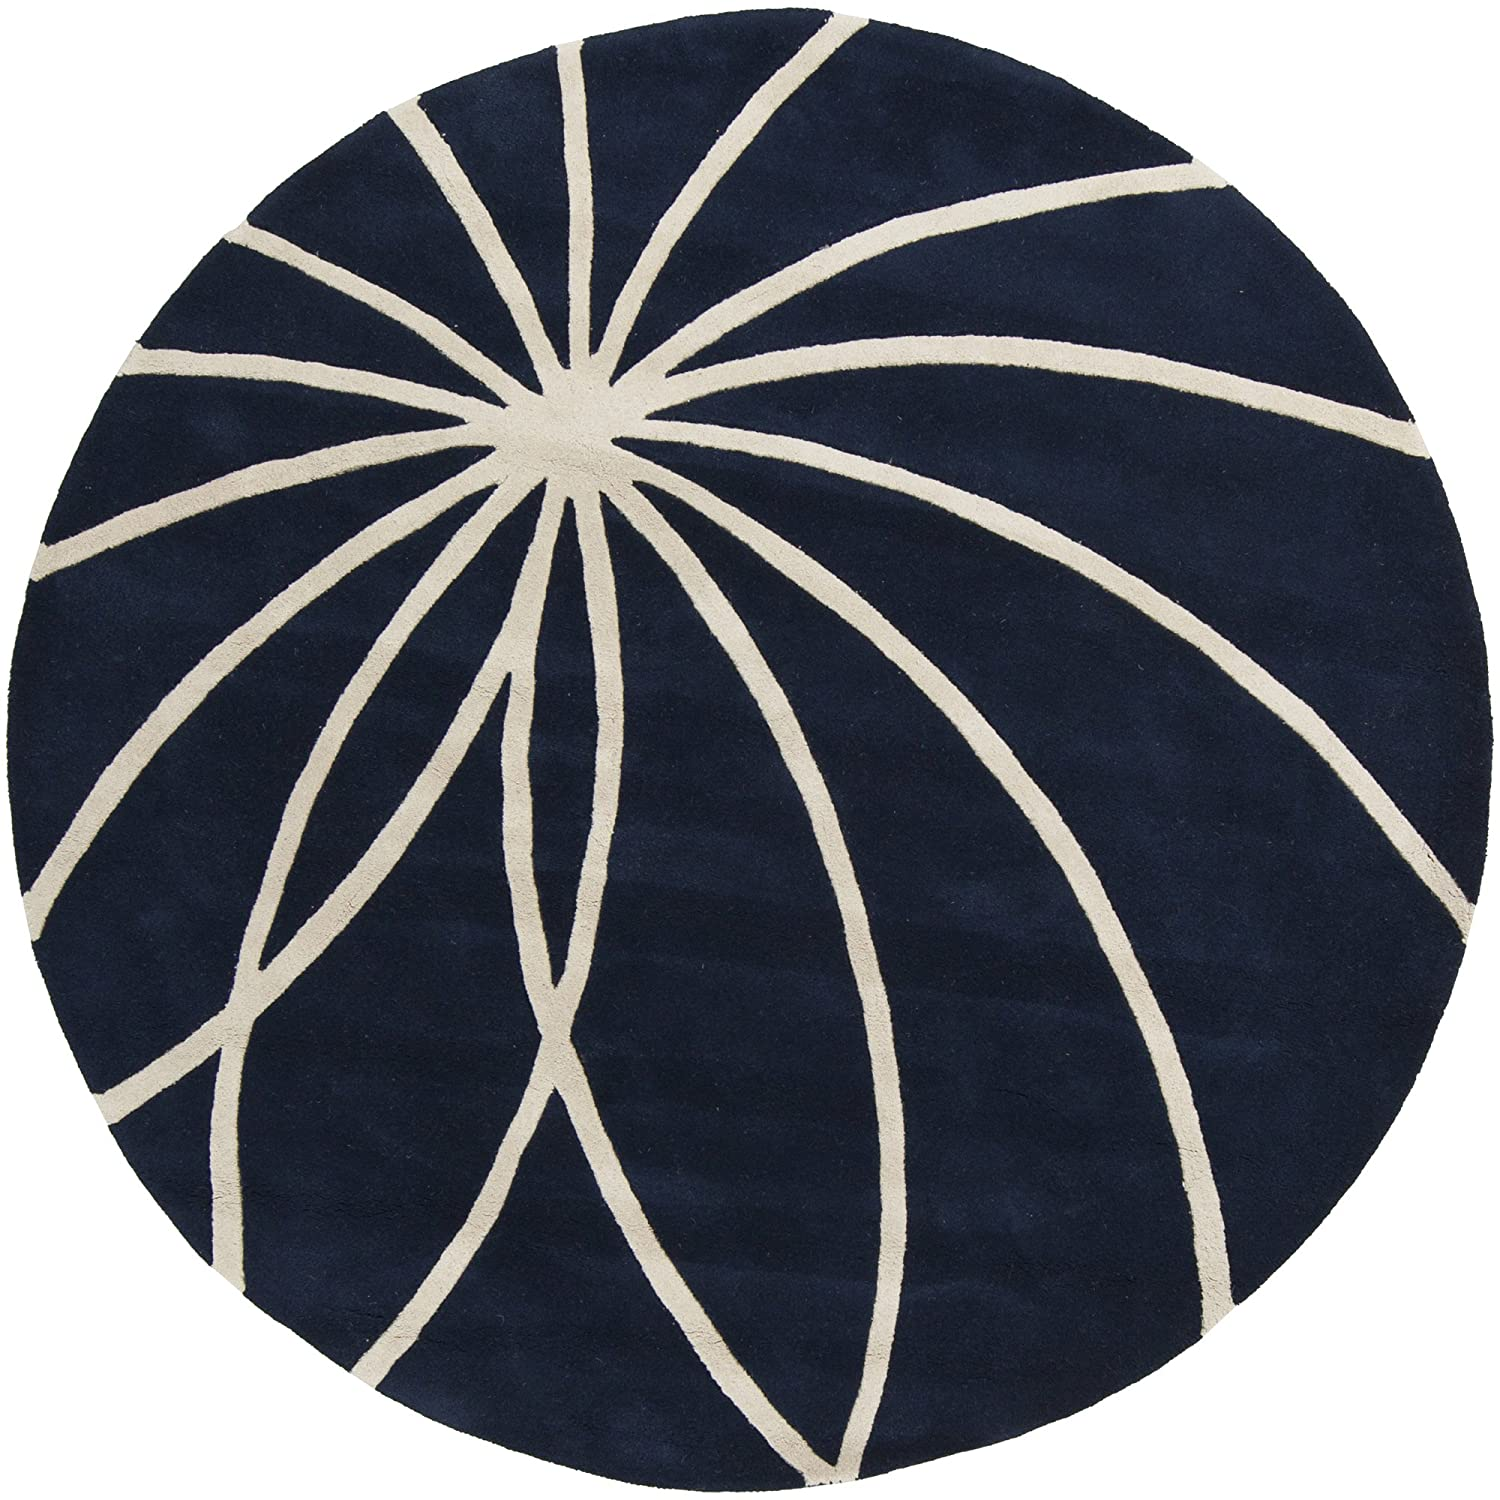 Surya Forum FM-7184 Contemporary Hand Tufted 100% Wool Bay Leaf 2' x 3' Abstract Accent Rug FM7184-23